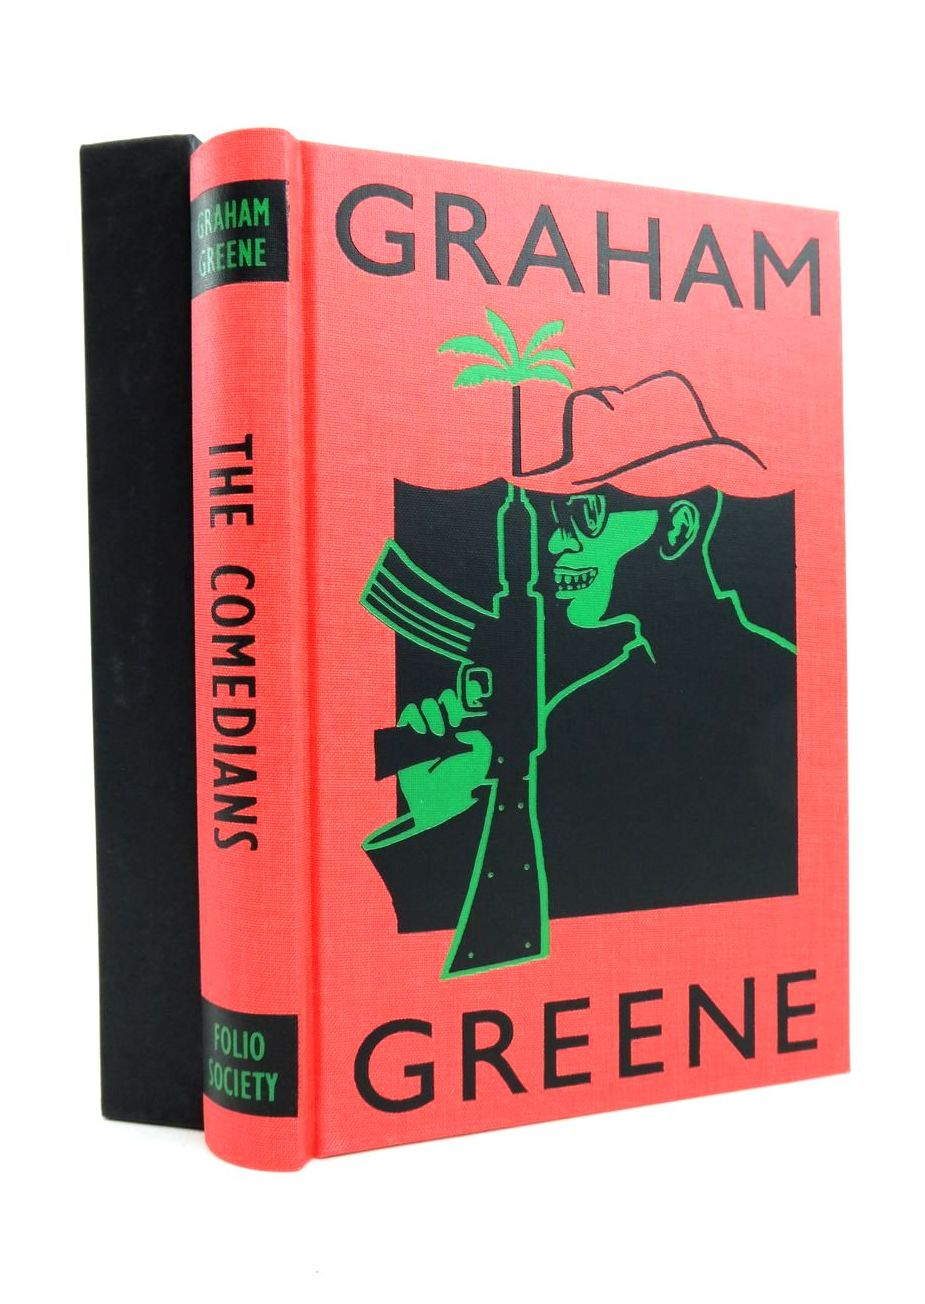 Photo of THE COMEDIANS written by Greene, Graham Wheen, Francis illustrated by Ogilvie, Sara published by Folio Society (STOCK CODE: 1821538)  for sale by Stella & Rose's Books